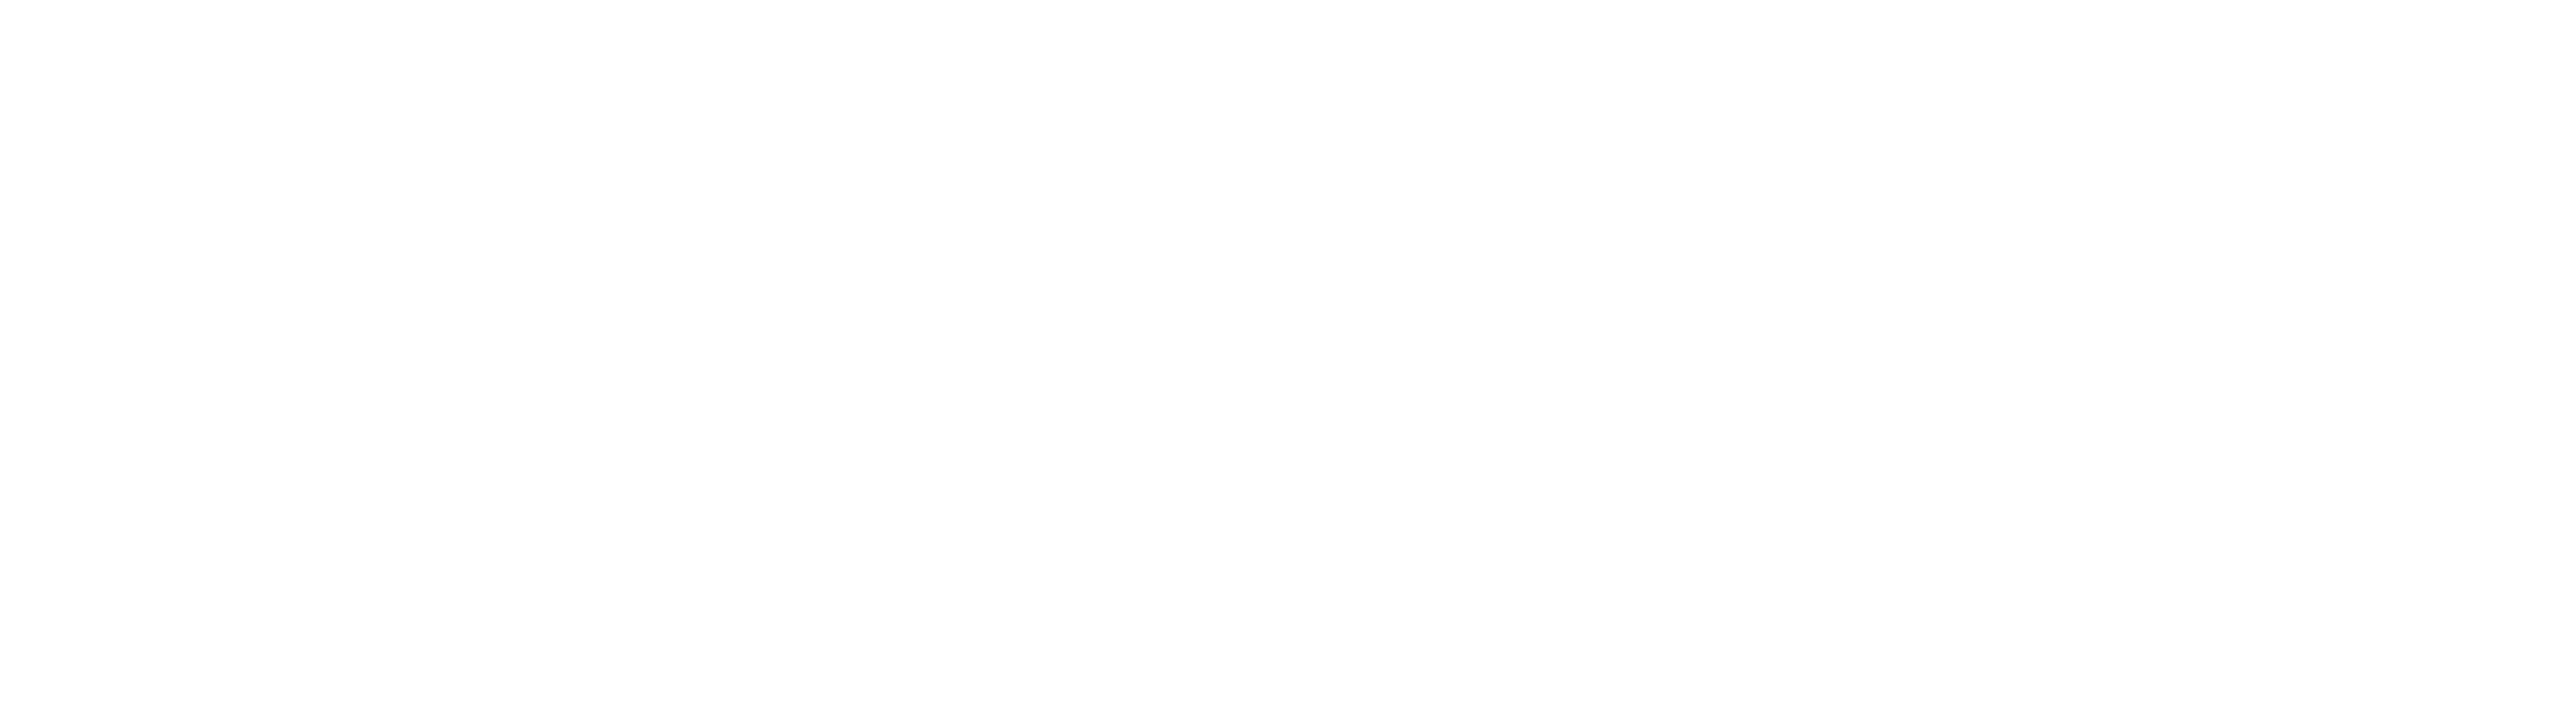 Grove Gardens Florist - Flower Delivery in Clinton, CT